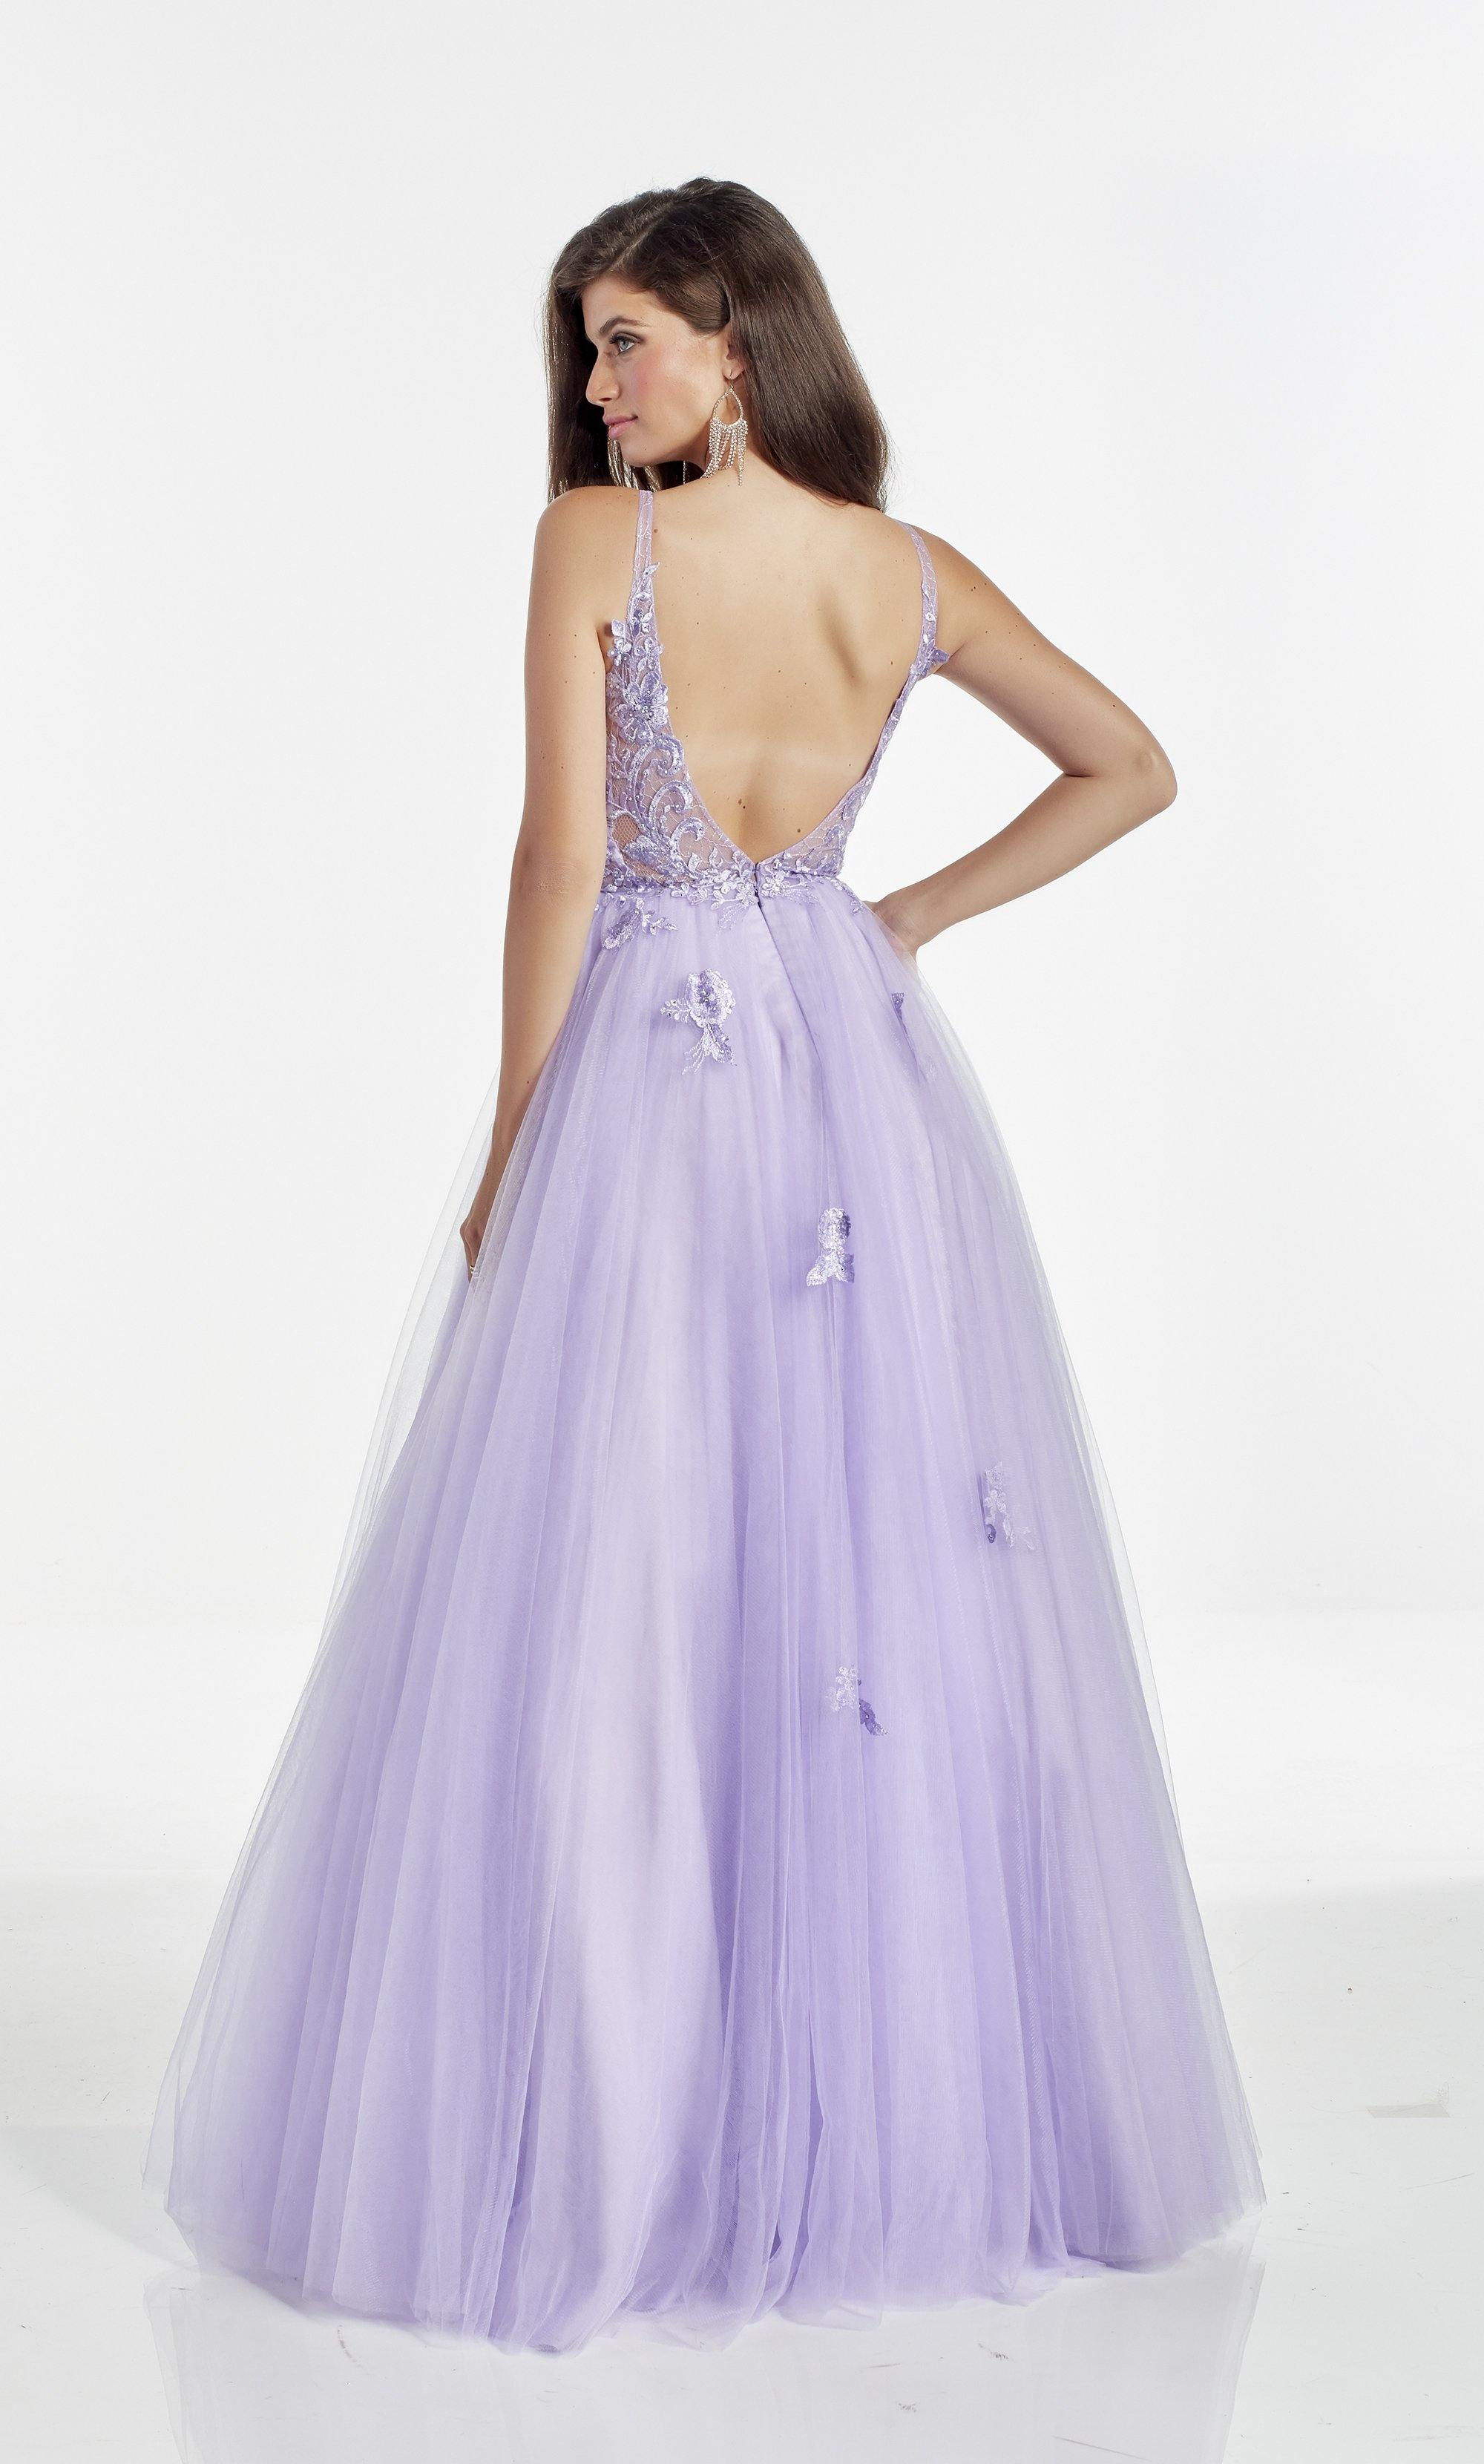 Blue Iris flowy prom dress with a plunging neckline and delicate embroidery on the sheer bodice and skirt